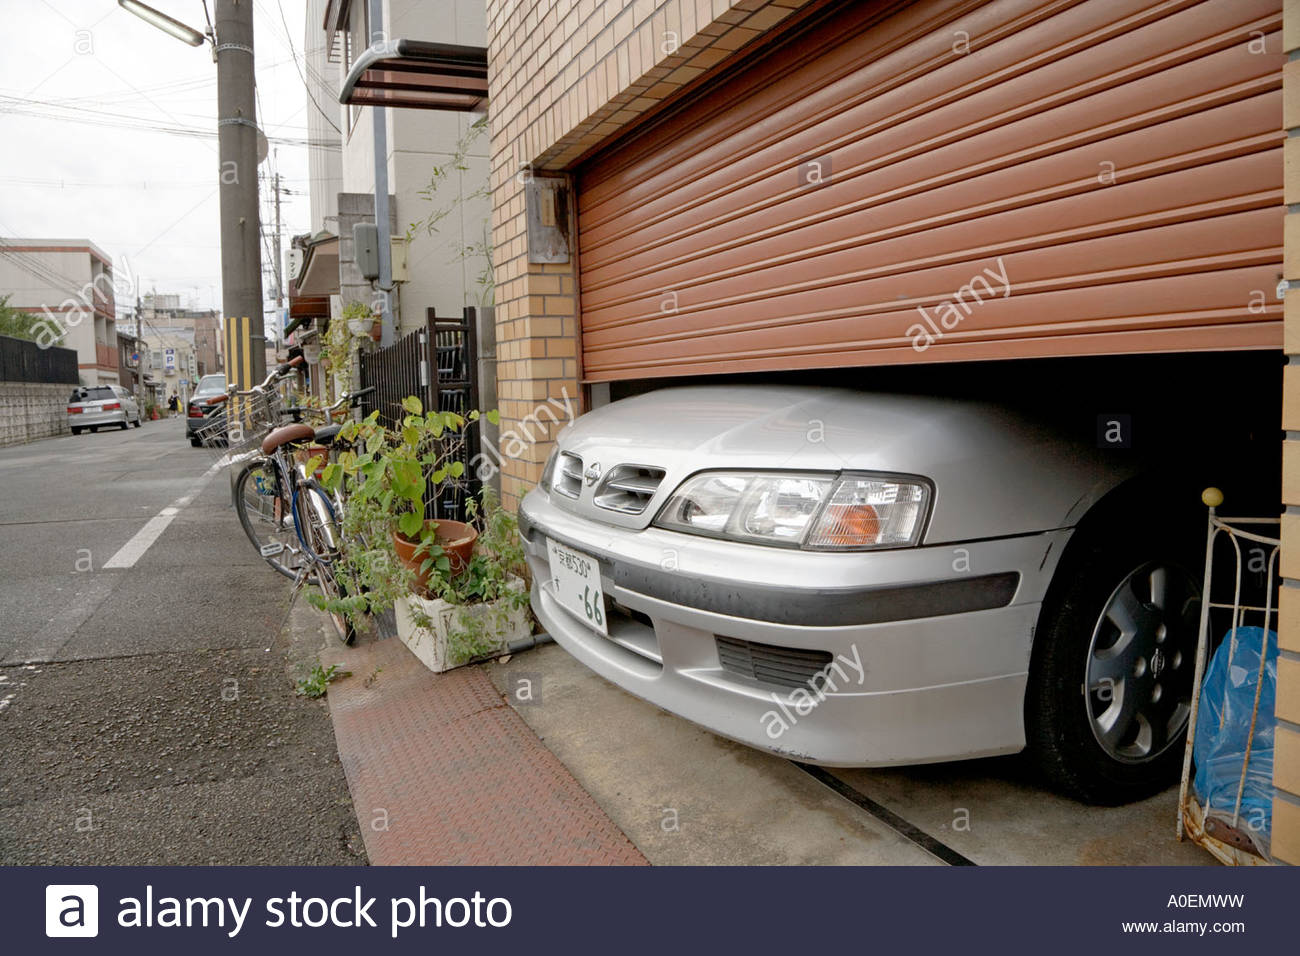 Indoor Parked Car With Nose Sticking Out From Under The Door As The